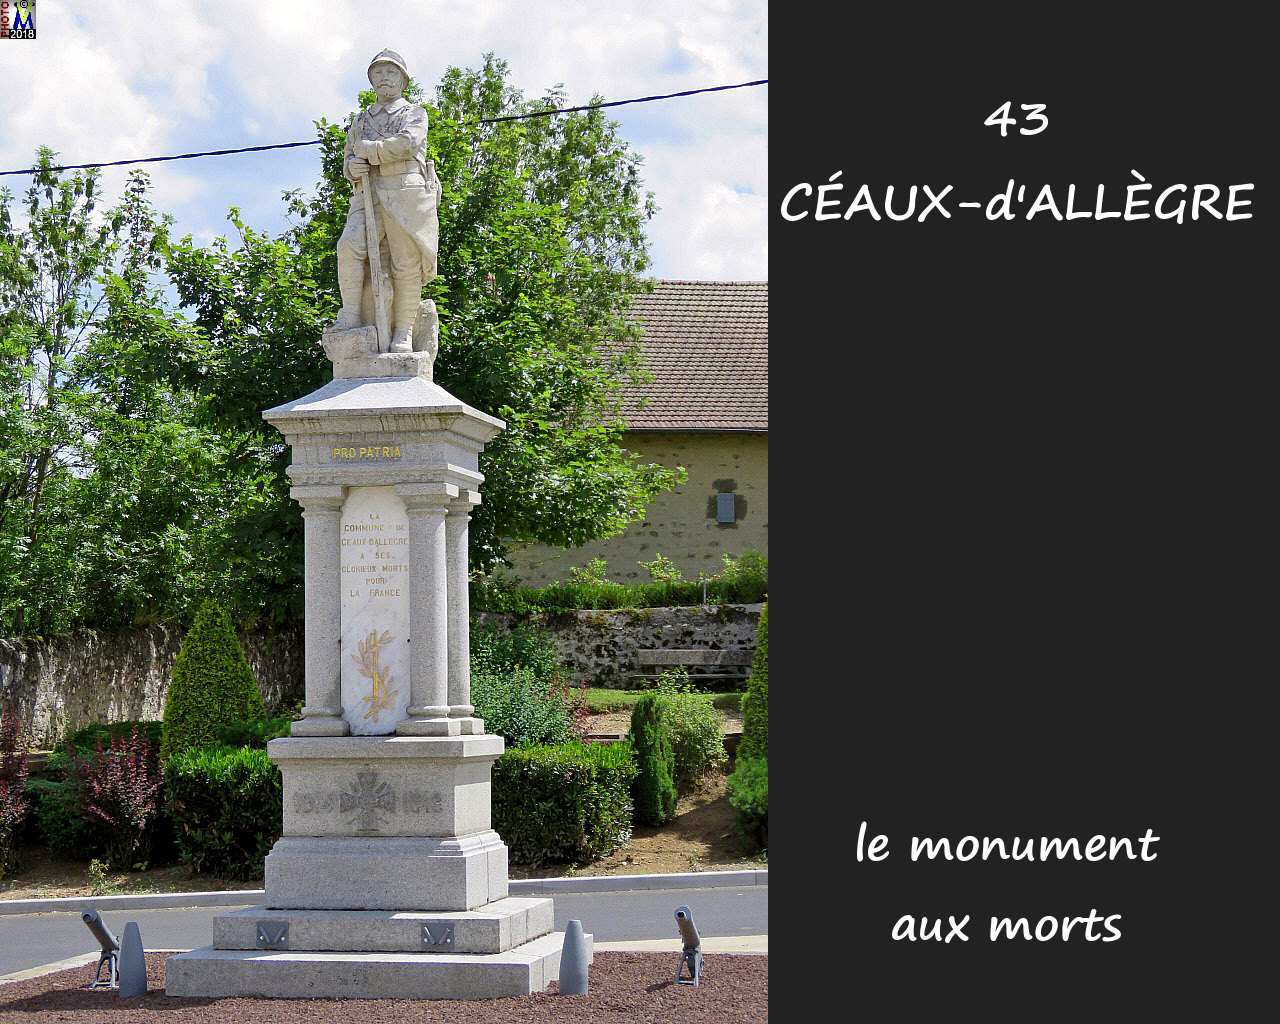 43CEAUX-ALLEGRE_morts_100.jpg